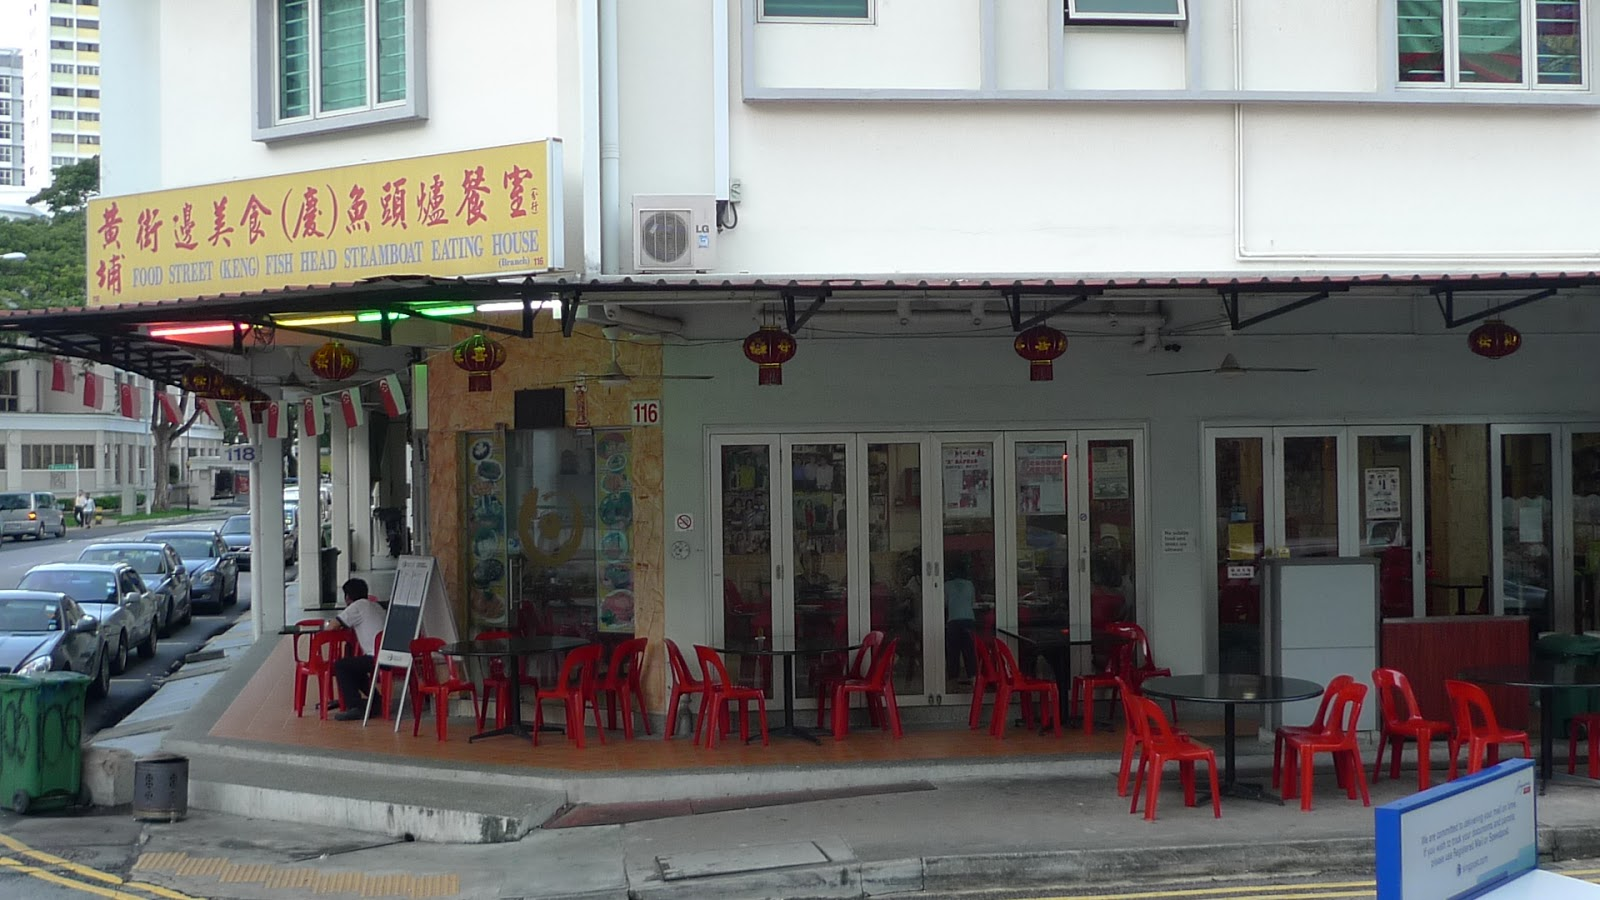 Food Review: Whampoa Food Street Keng Fish Head Steamboat ...